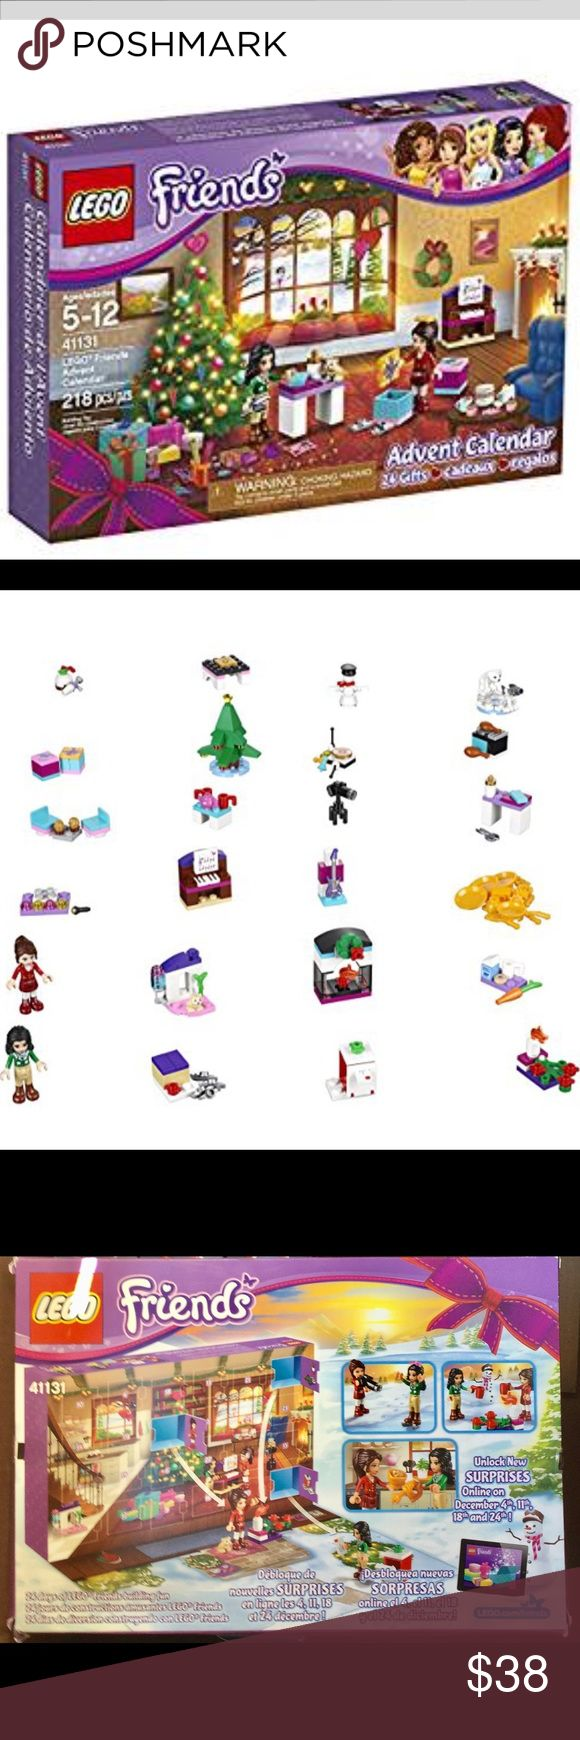 LEGO Friends 41131 Advent Calendar Building Kit Brand New - 2016 LEGO Friends 41131 Advent Calendar Building Kit (218 Piece) Features 24 gifts, each enclosed in its own compartment in a LEGO Friends holiday-themed calendar Open a new compartment each day and count down to Christmas with buildable gifts Collect 24 buildable surprises including musical instruments, microphone and DJ decks, a hamster, fireplace, snowman and ice skates Lego Other